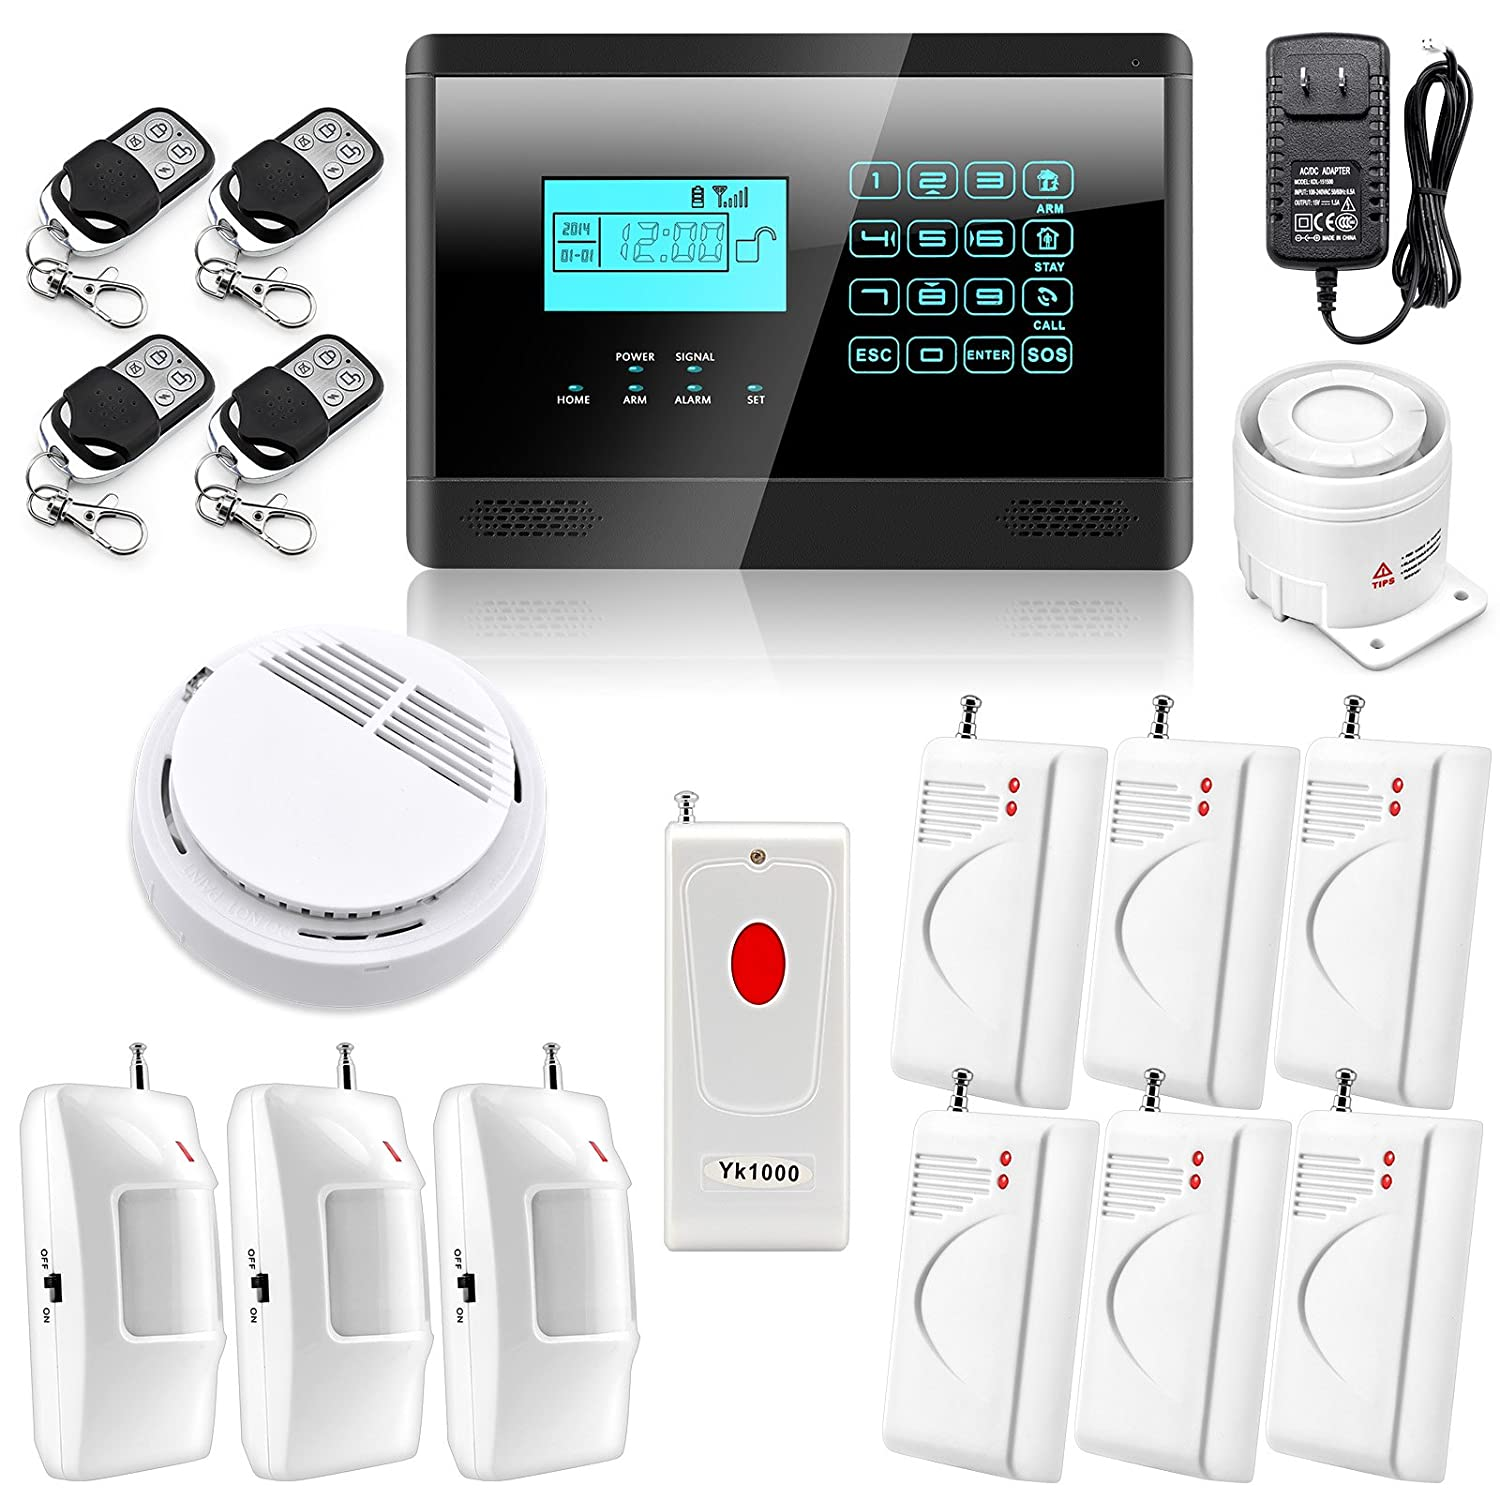 Wolf Guard Wireless Autodial Smart Home House Security Burglar Alarm System